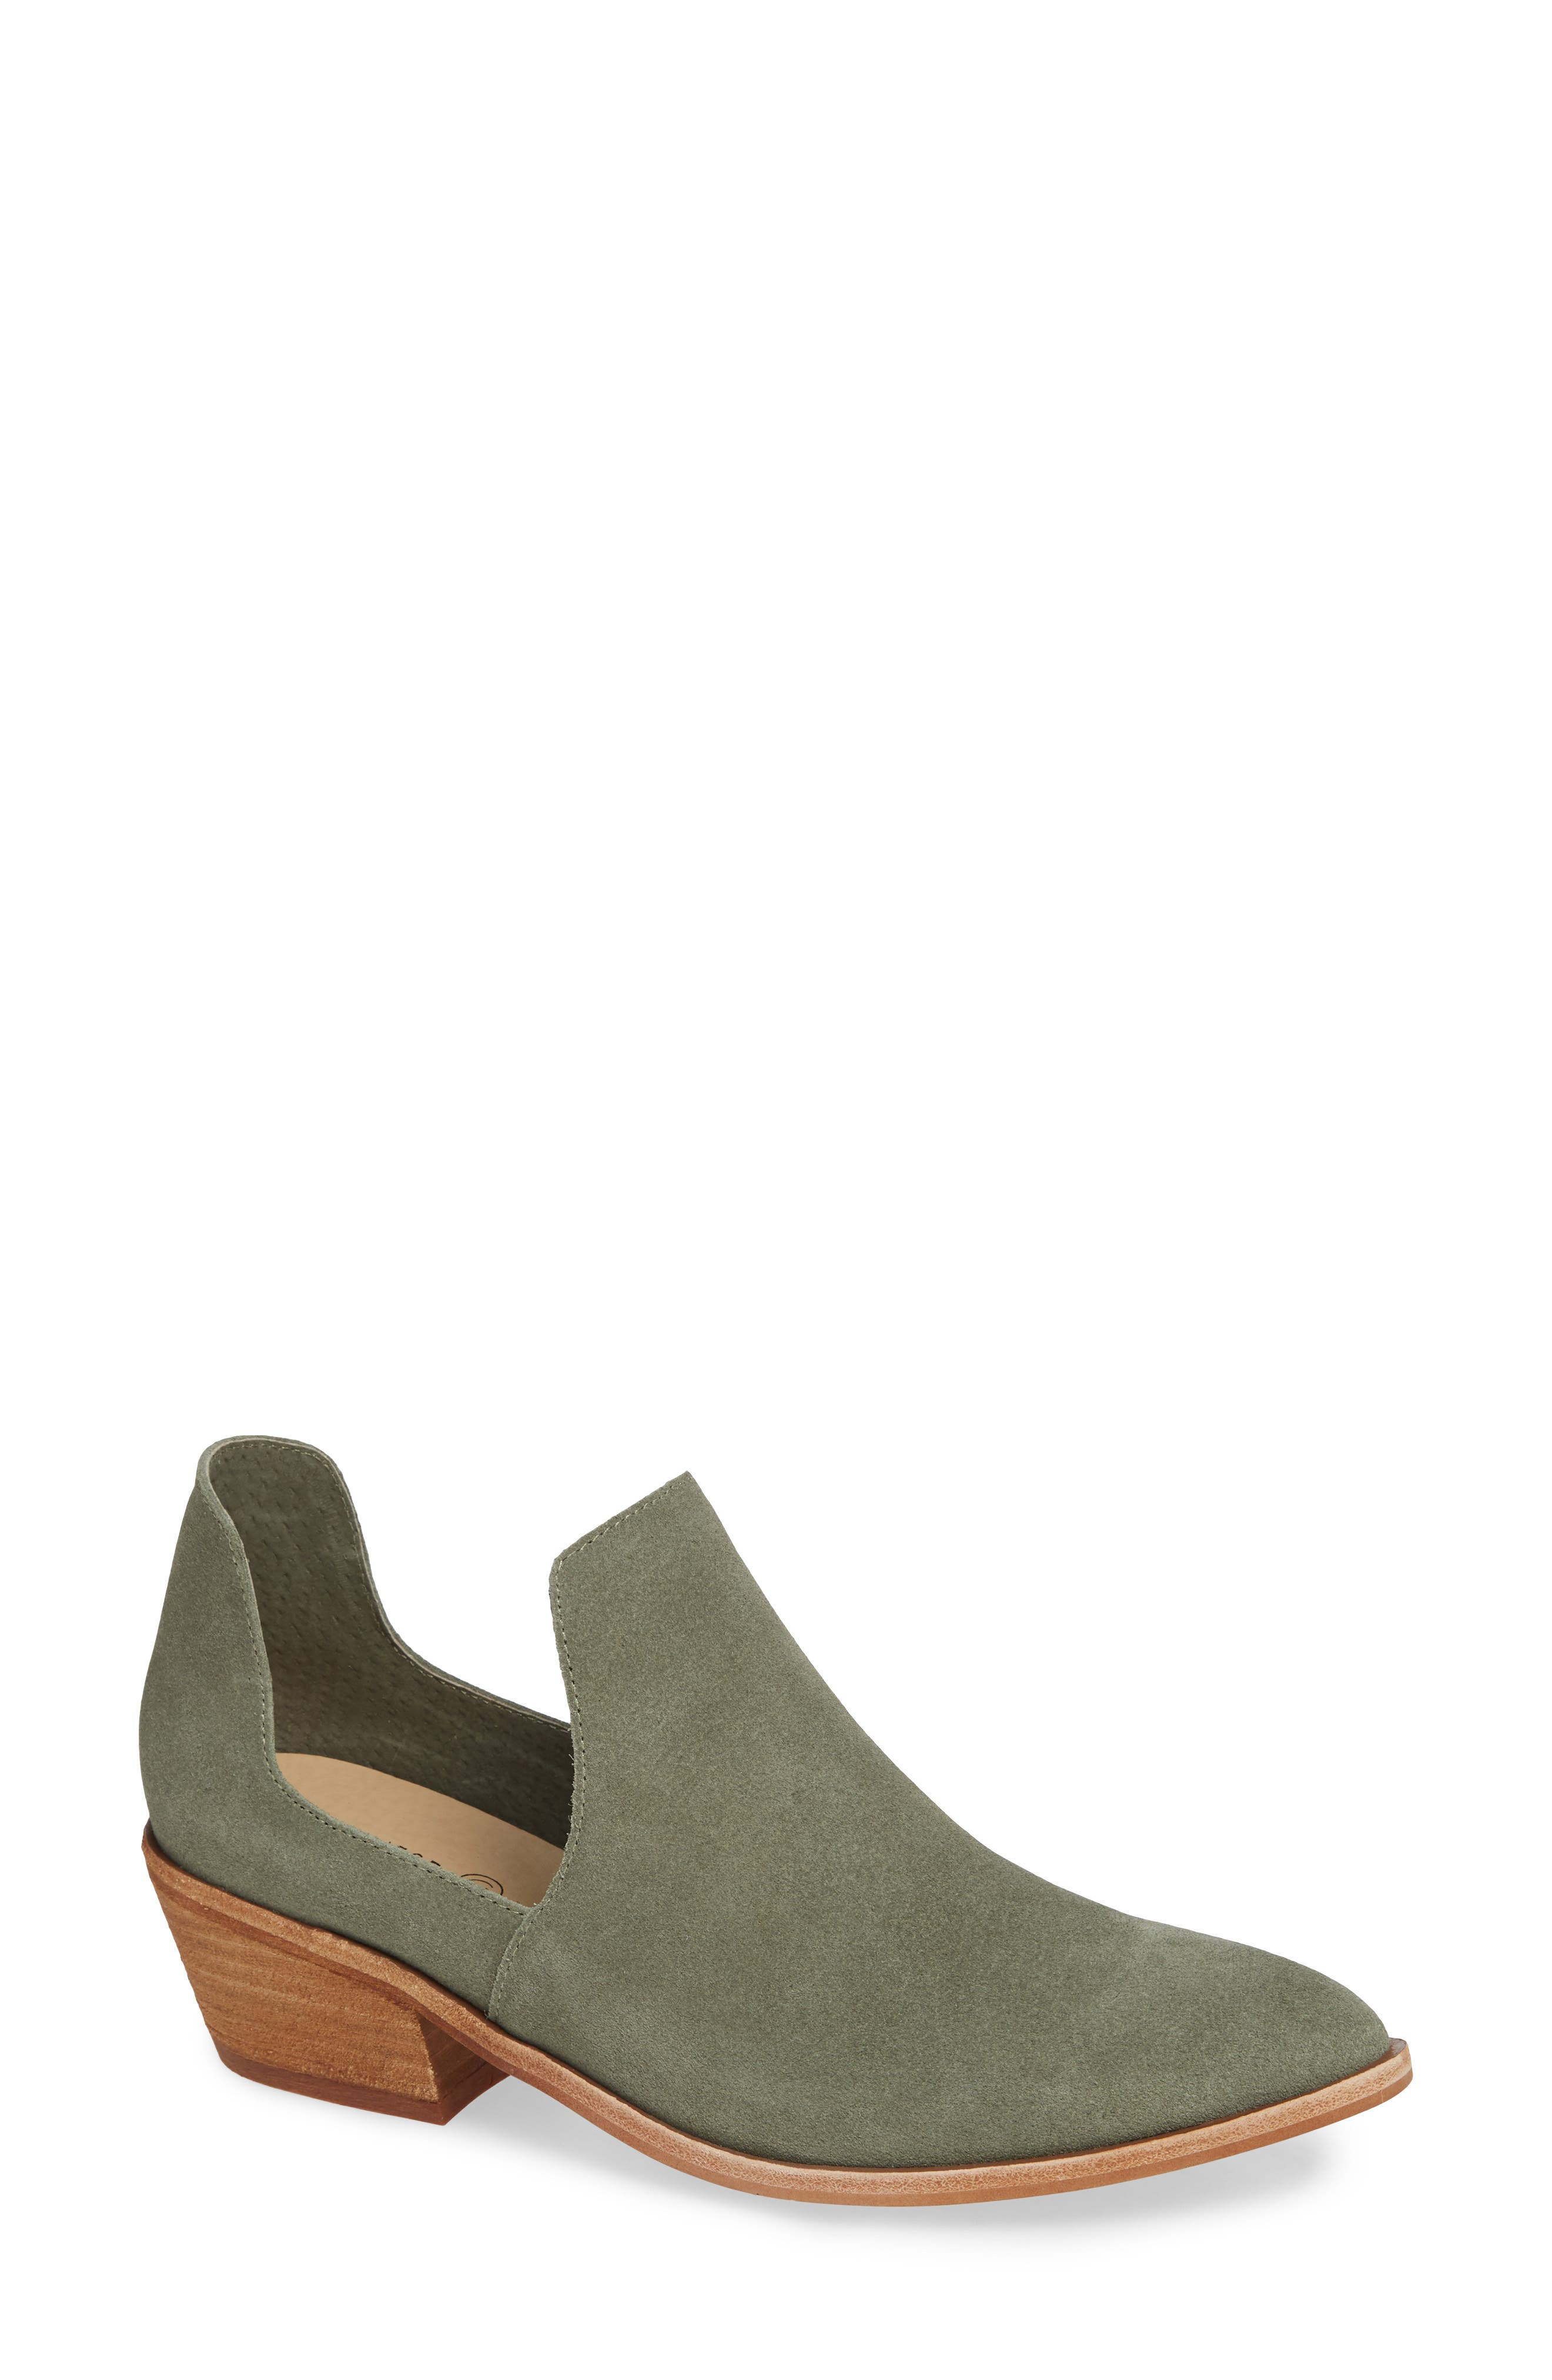 Chinese Laundry Focus Open Sided Bootie, Green